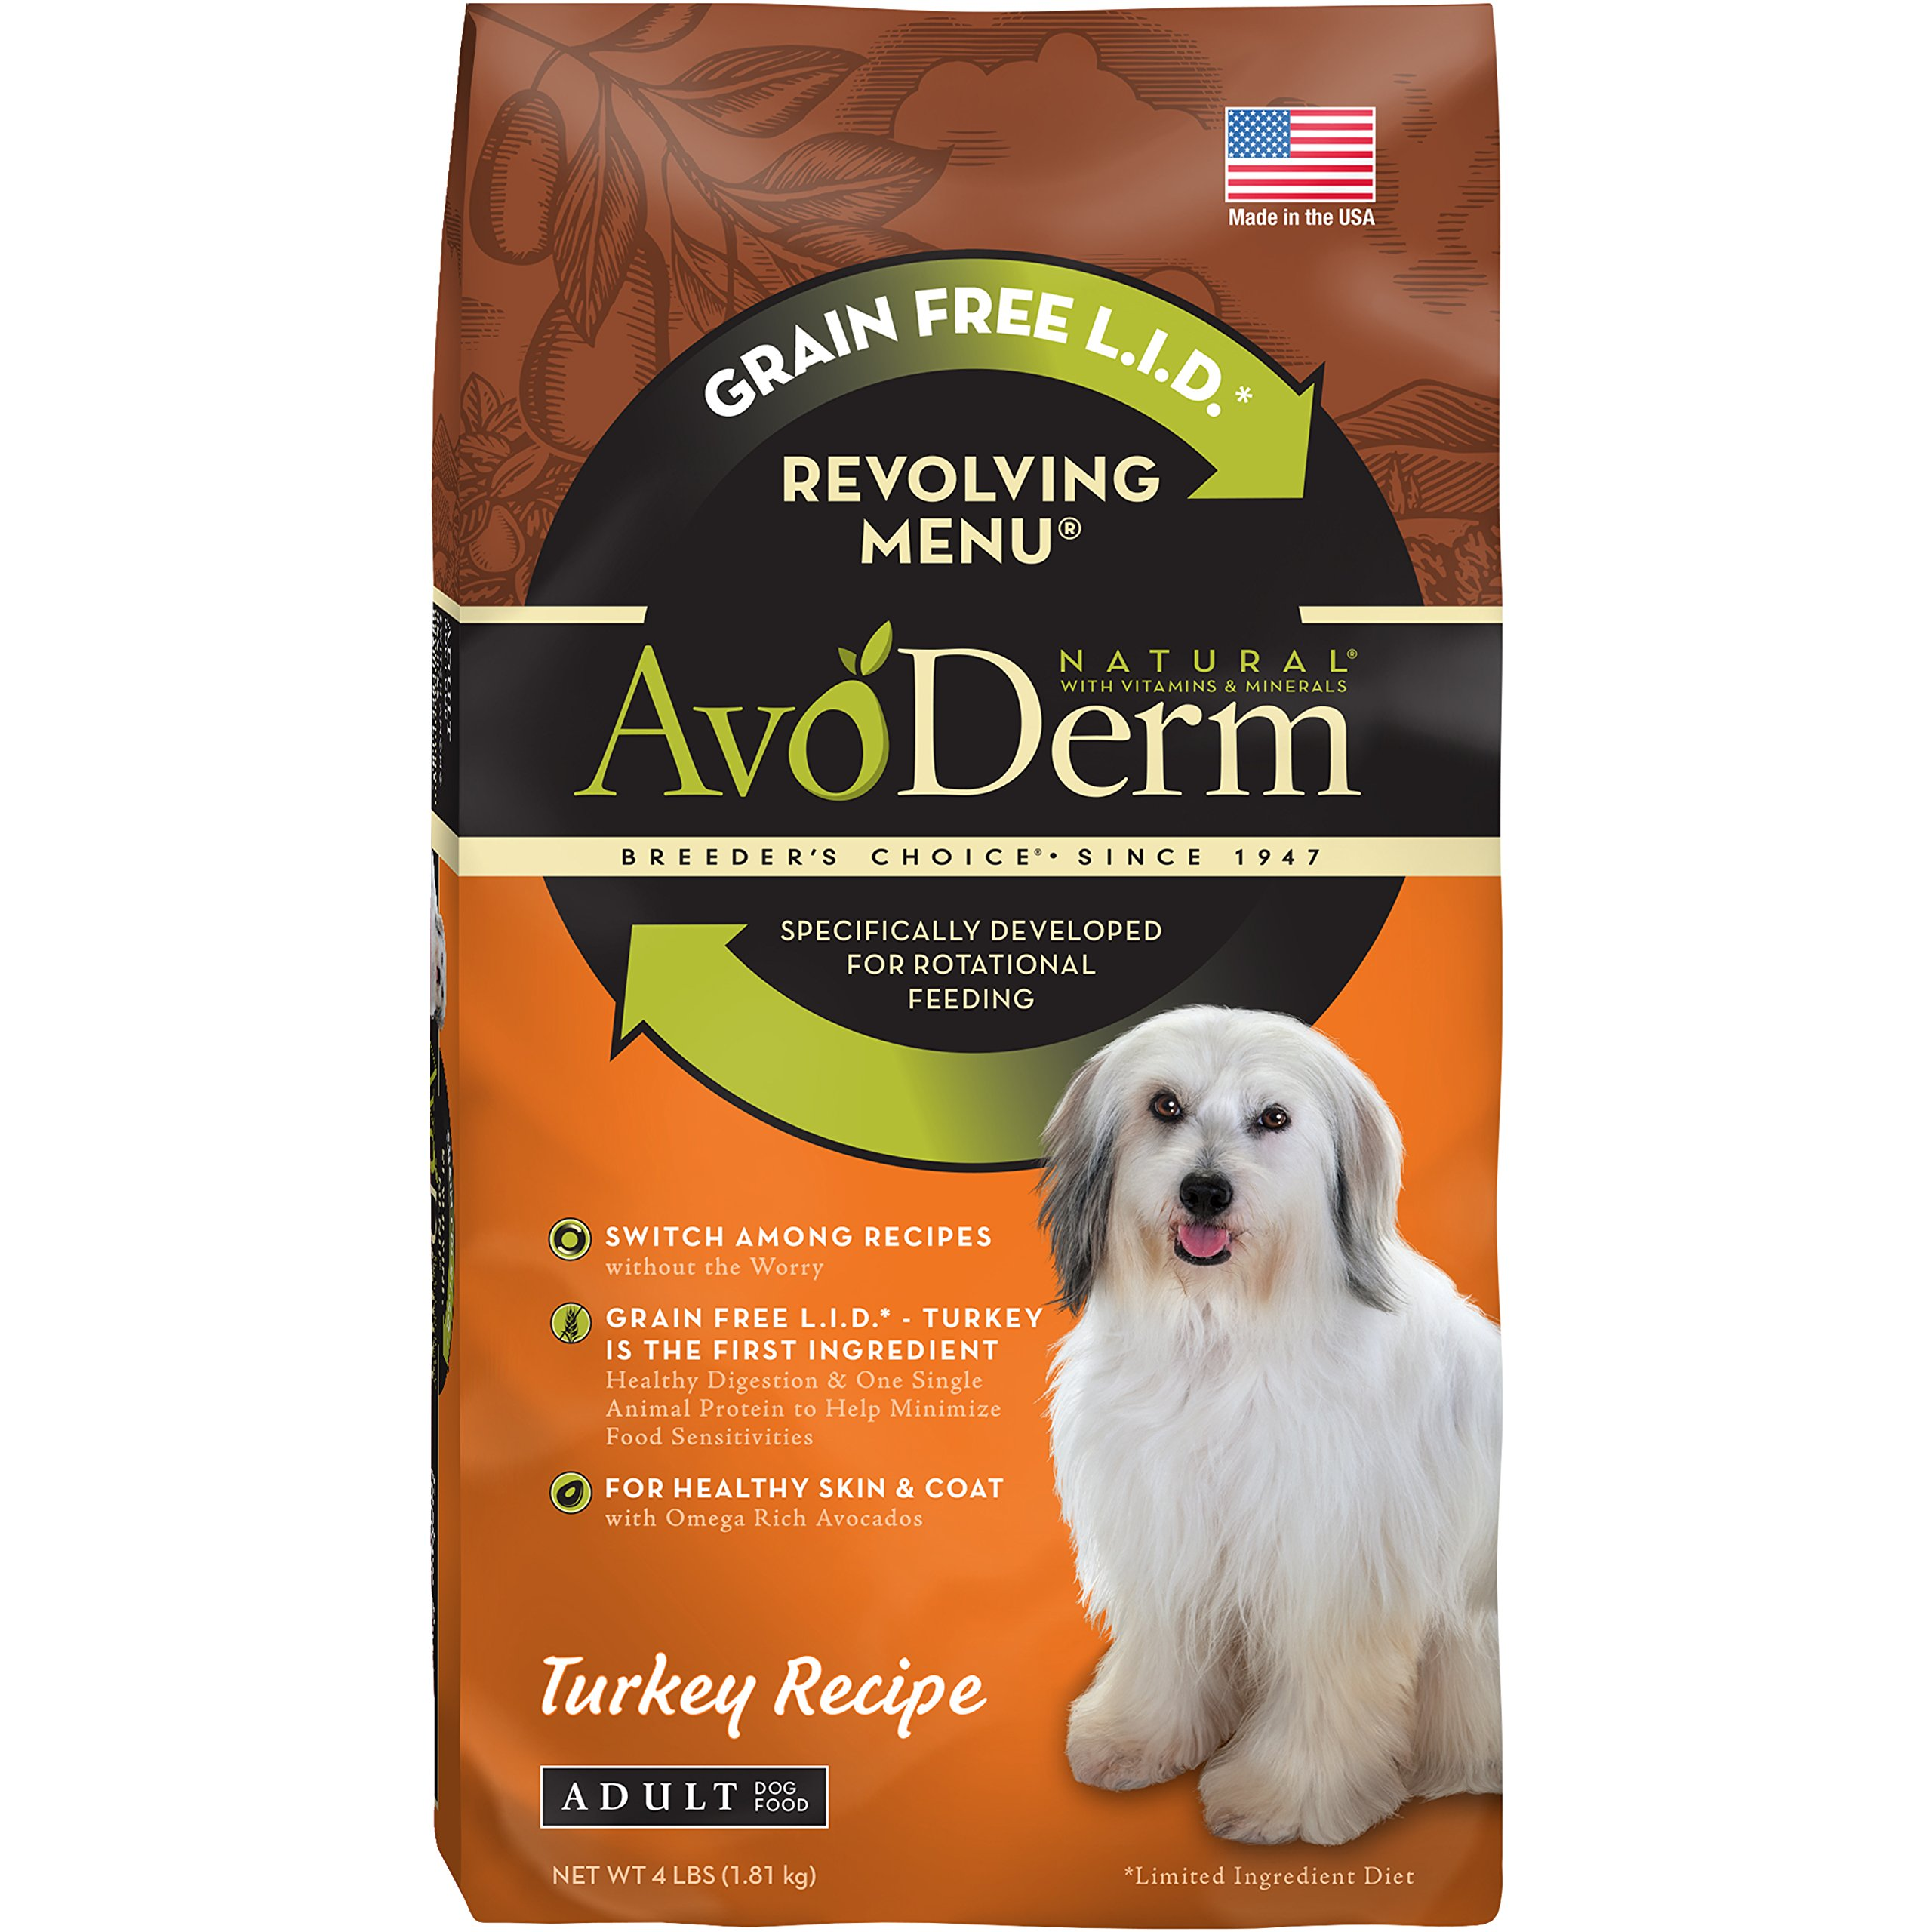 AvoDerm Natural Revolving Menu Turkey Recipe Dry Dog Food, 4-Pound